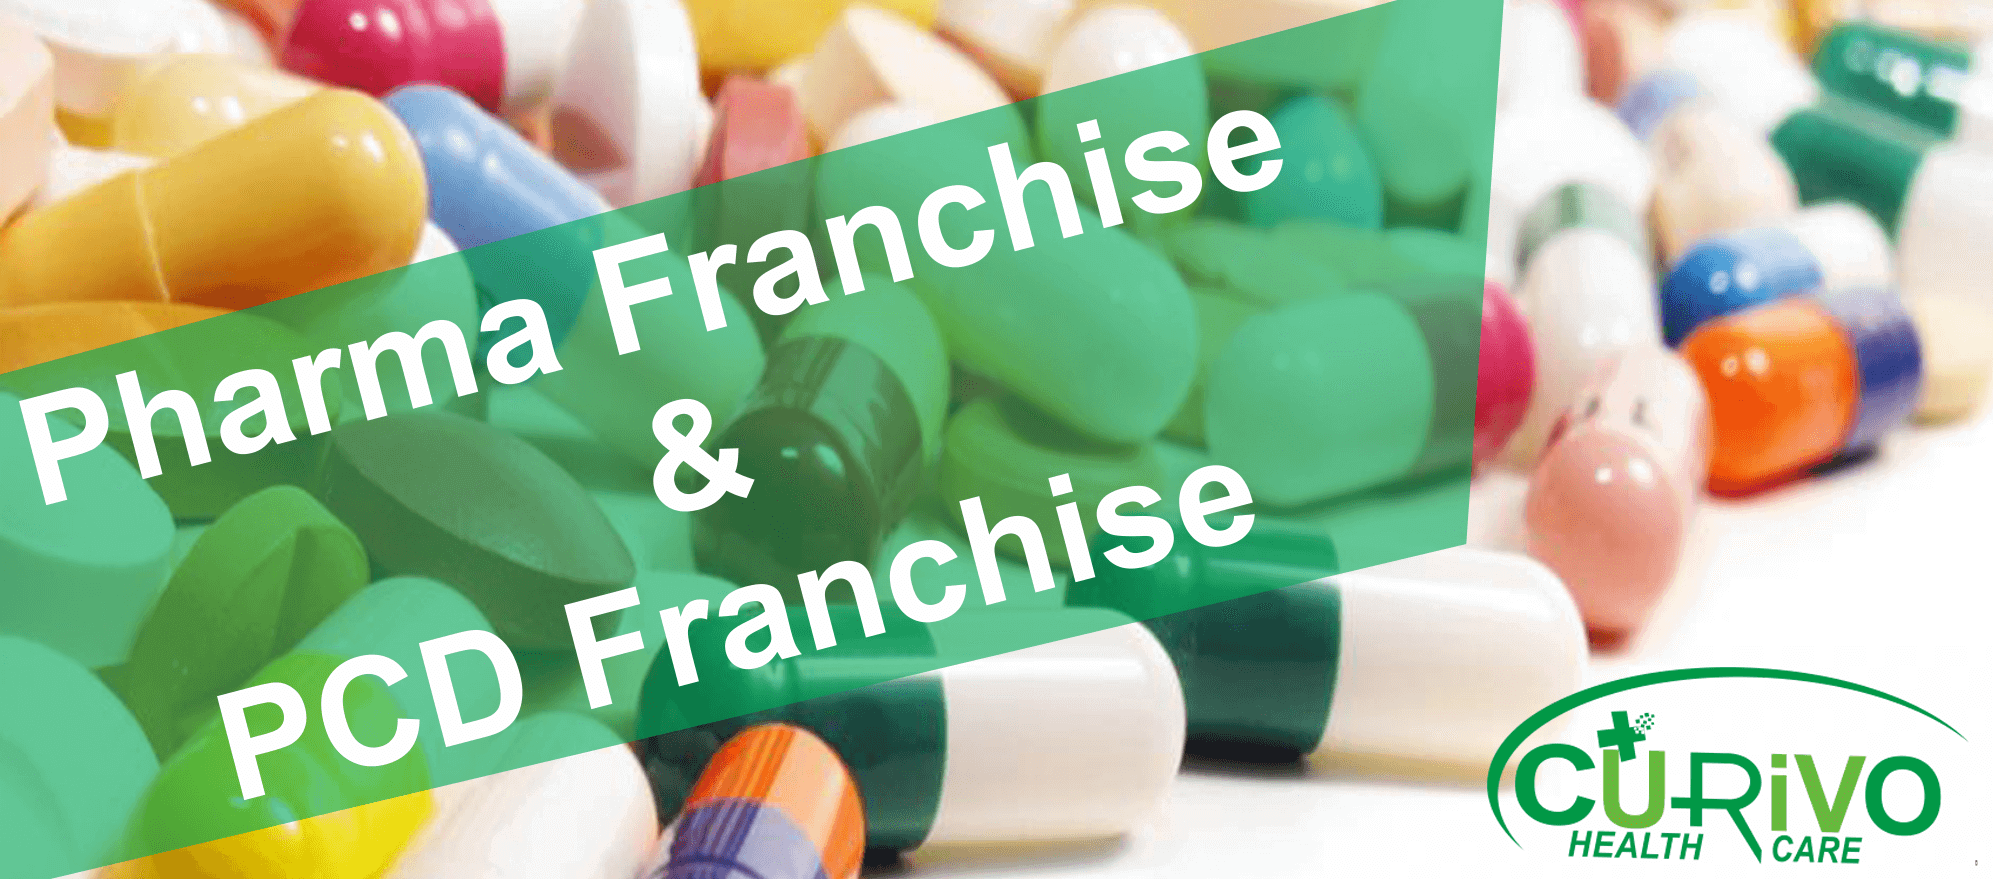 Difference between Pharma Franchise and PCD Franchise